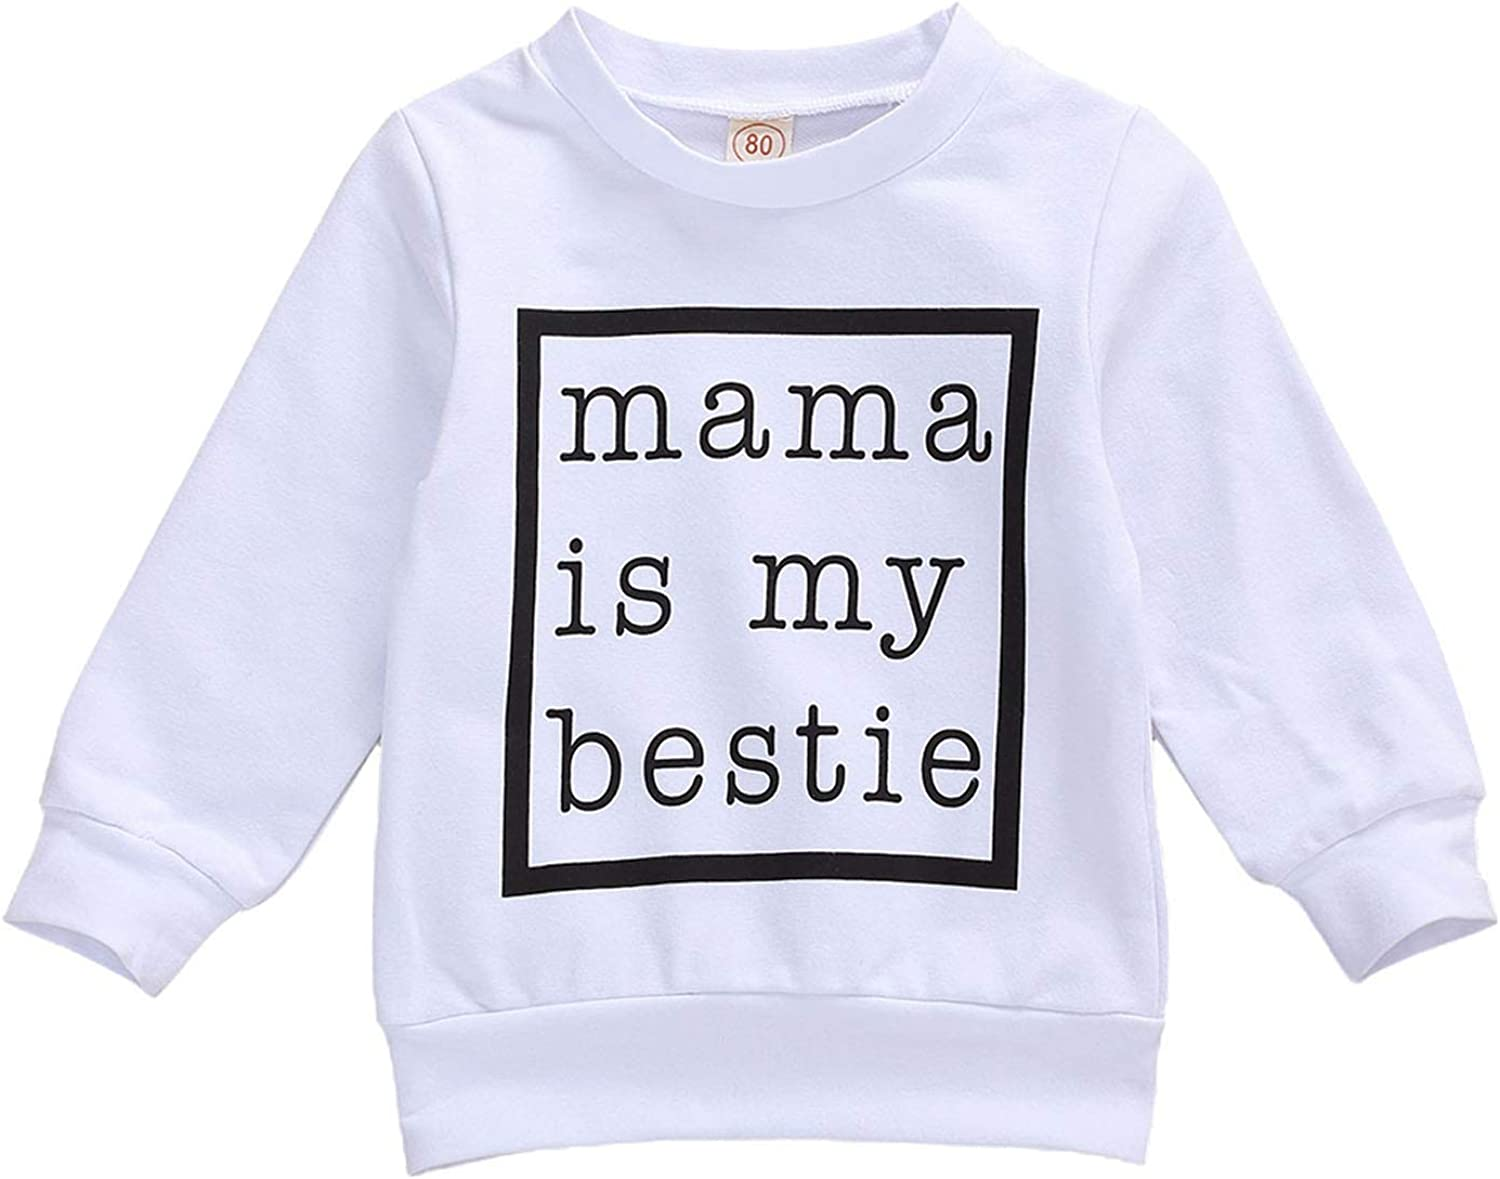 Toddler Baby Girl Boy Letter Print Sweater Long Sleeve Pullover Shirts Sweatshirt Tops Casual Spring Fall Winter Clothes